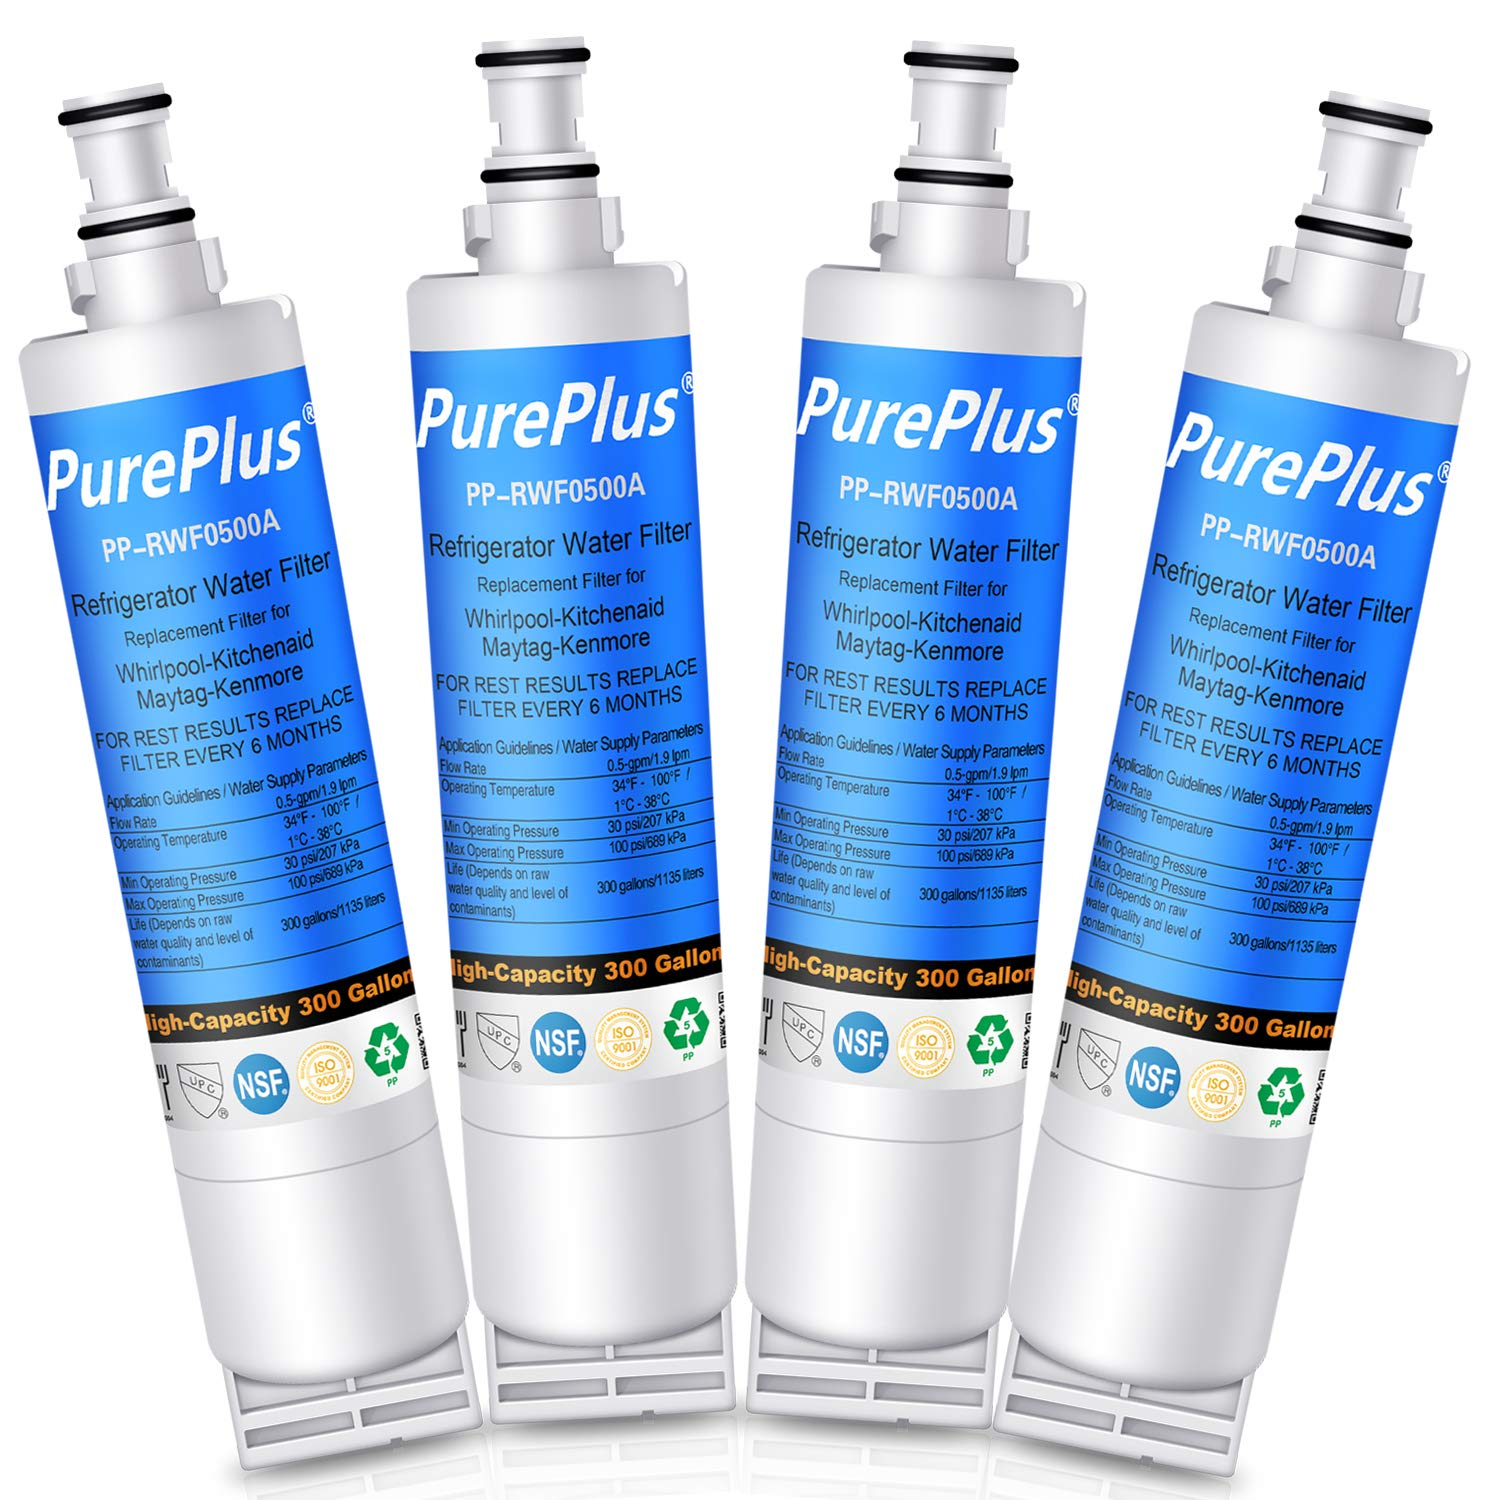 PurePlus Replacement Refrigerator Water Filter, Compatible with 4396508, 4396510,Kenmore 46-9010, 469010, EDR5RXD1, Kitchenaid 4396547, 4396548(4 PACK)